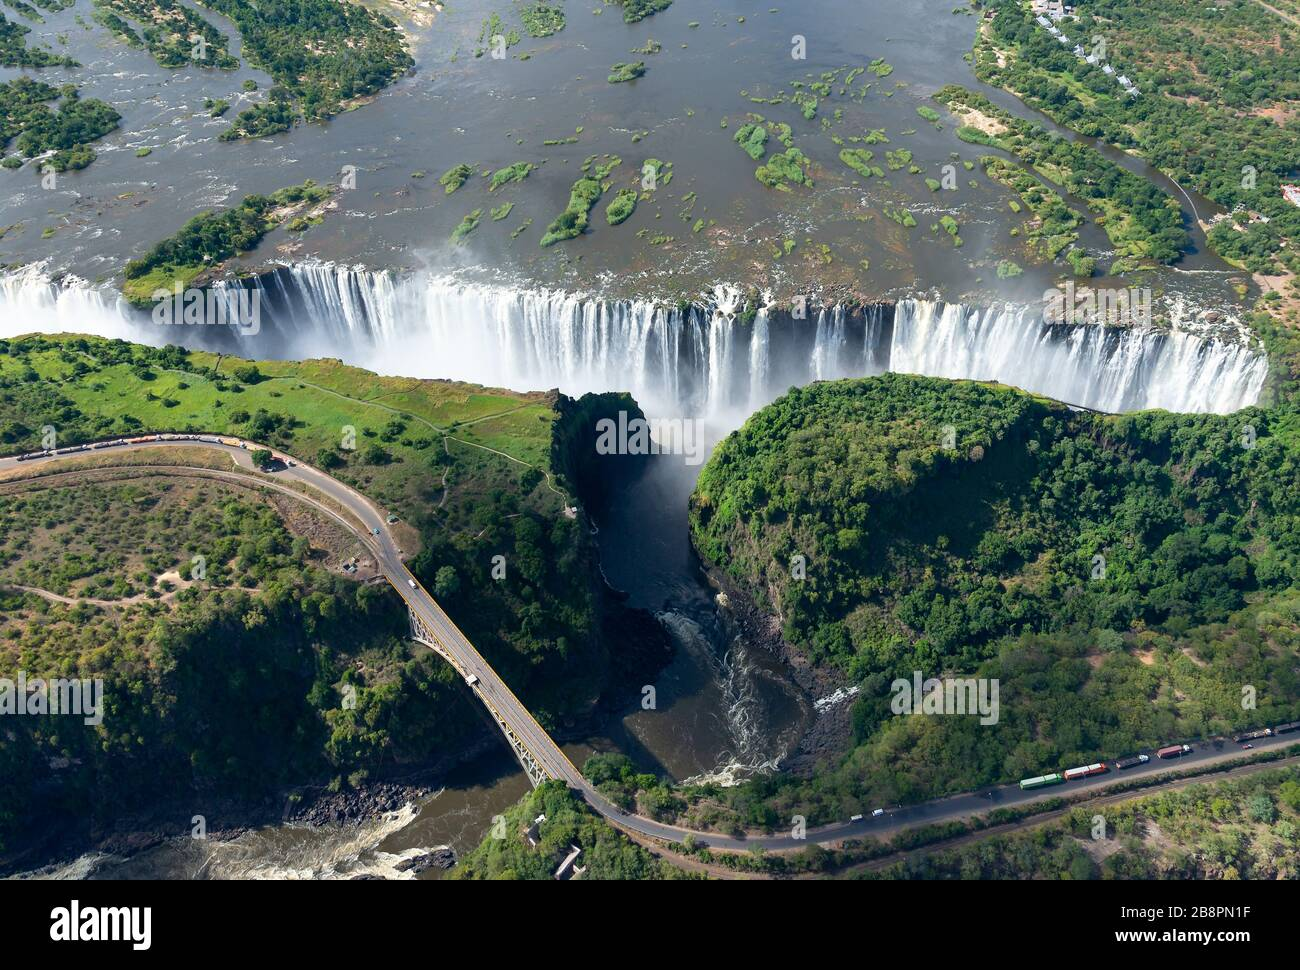 Aerial view of Victoria Falls located between Zimbabwe and Zambia in Africa. Seven Natural Wonders of the World. Zambezi River and border bridge. Stock Photo